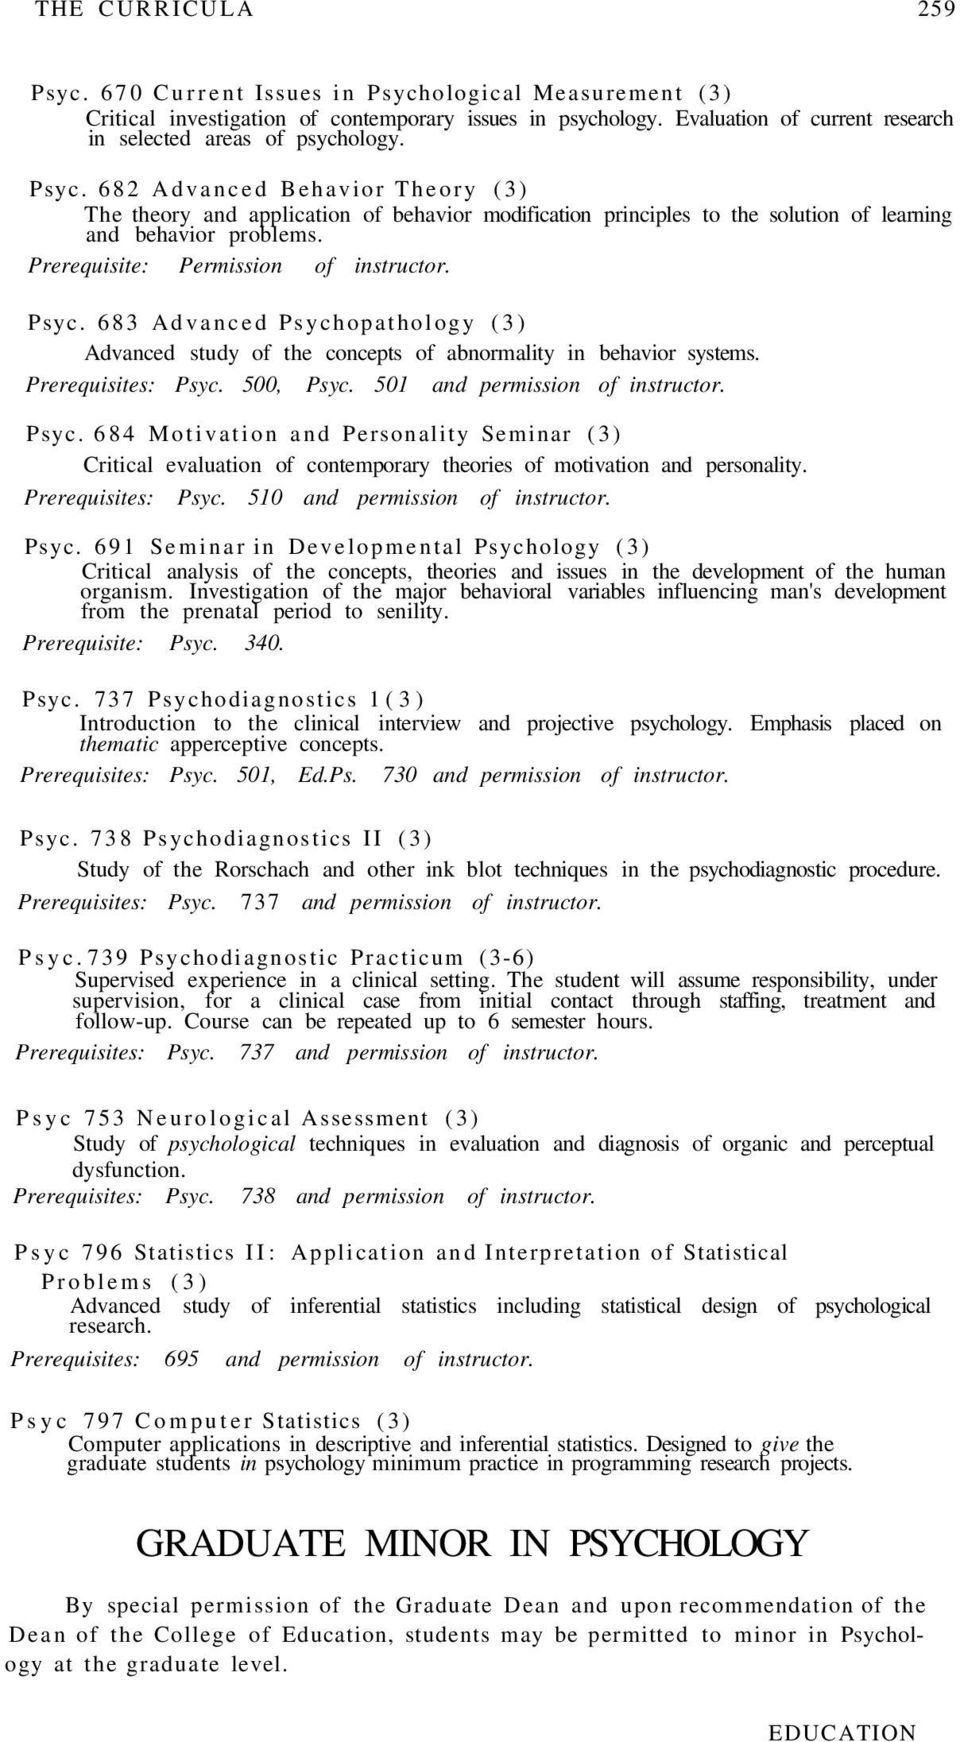 683 Advanced Psychopathology (3) Advanced study of the concepts of abnormality in behavior systems. Prerequisites: Psyc. 500, Psyc. 501 and permission of instructor. Psyc. 684 Motivation and Personality Seminar (3) Critical evaluation of contemporary theories of motivation and personality.